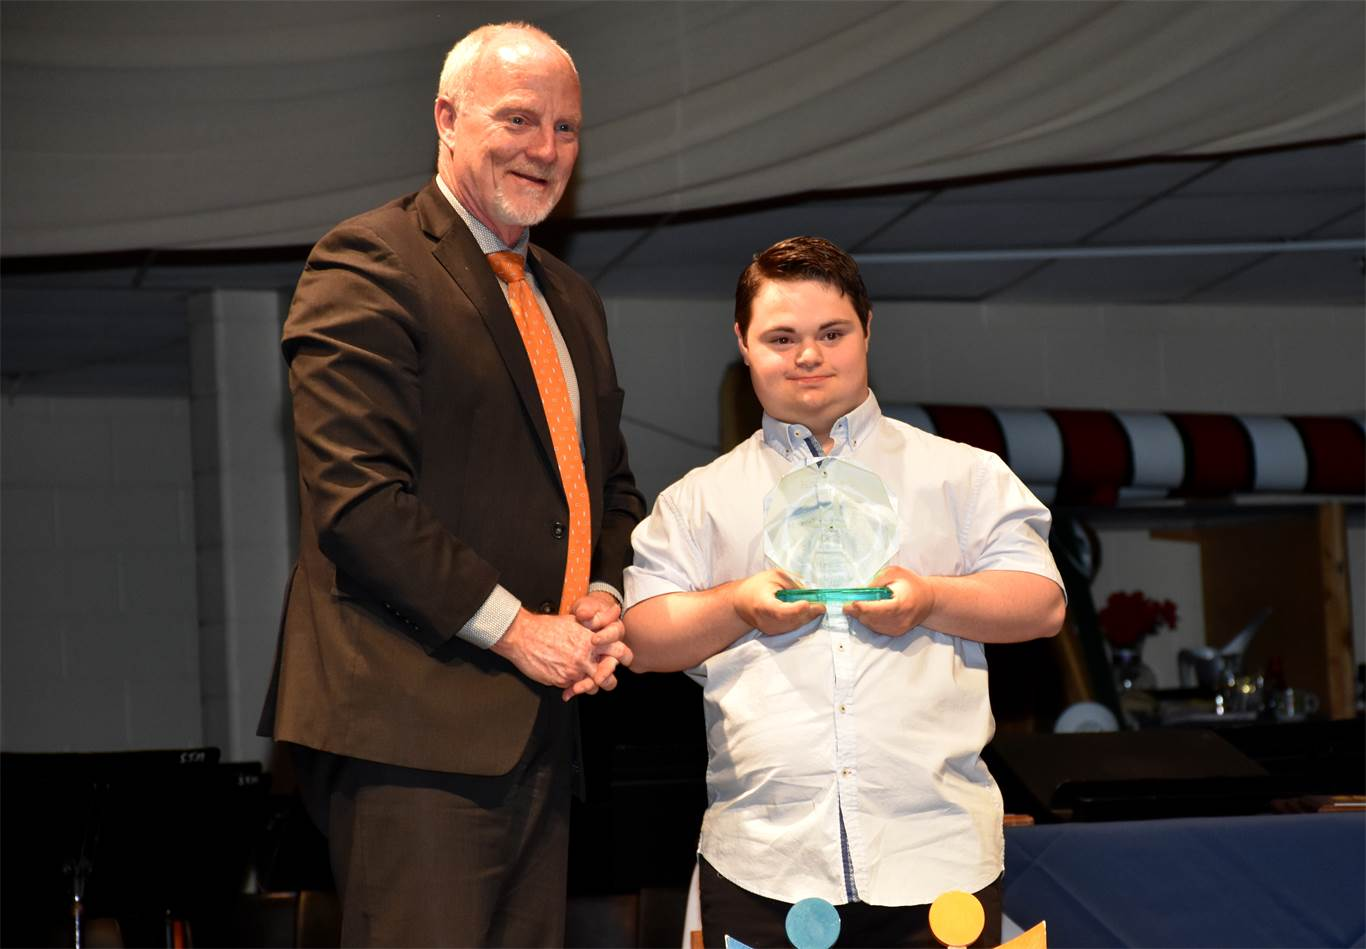 Presenting the James Hansen Spirit of Community Award on behalf of his late father, Director of Education David Hansen congratulated Marc Marcelli from St. Thomas More Catholic Secondary School for being a